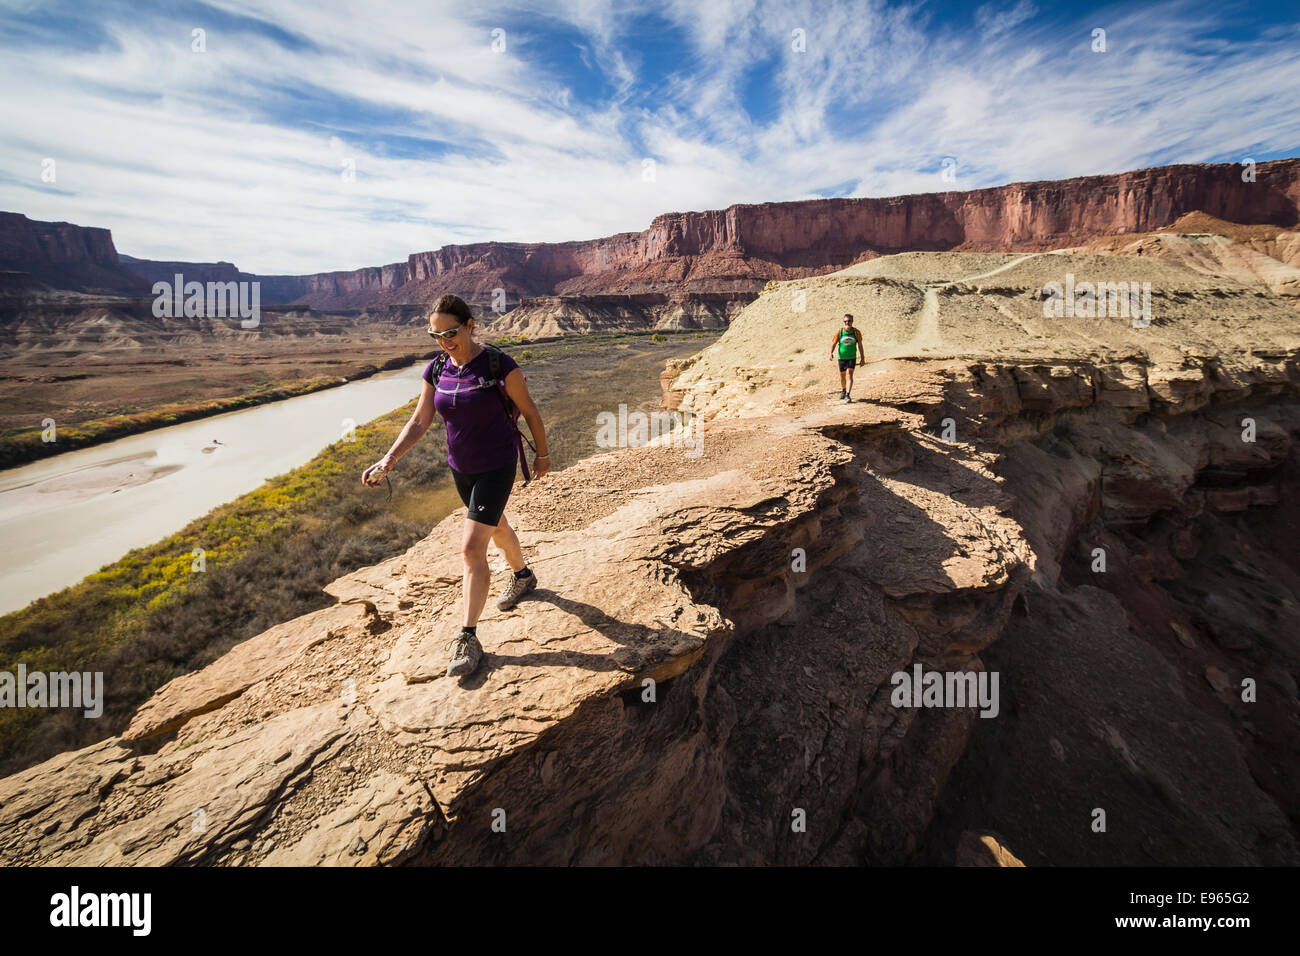 Hikers on the trail to Fort Bottom ruins from the White Rim trail near Moab, Utah. Canyonlands National Park. Stock Photo